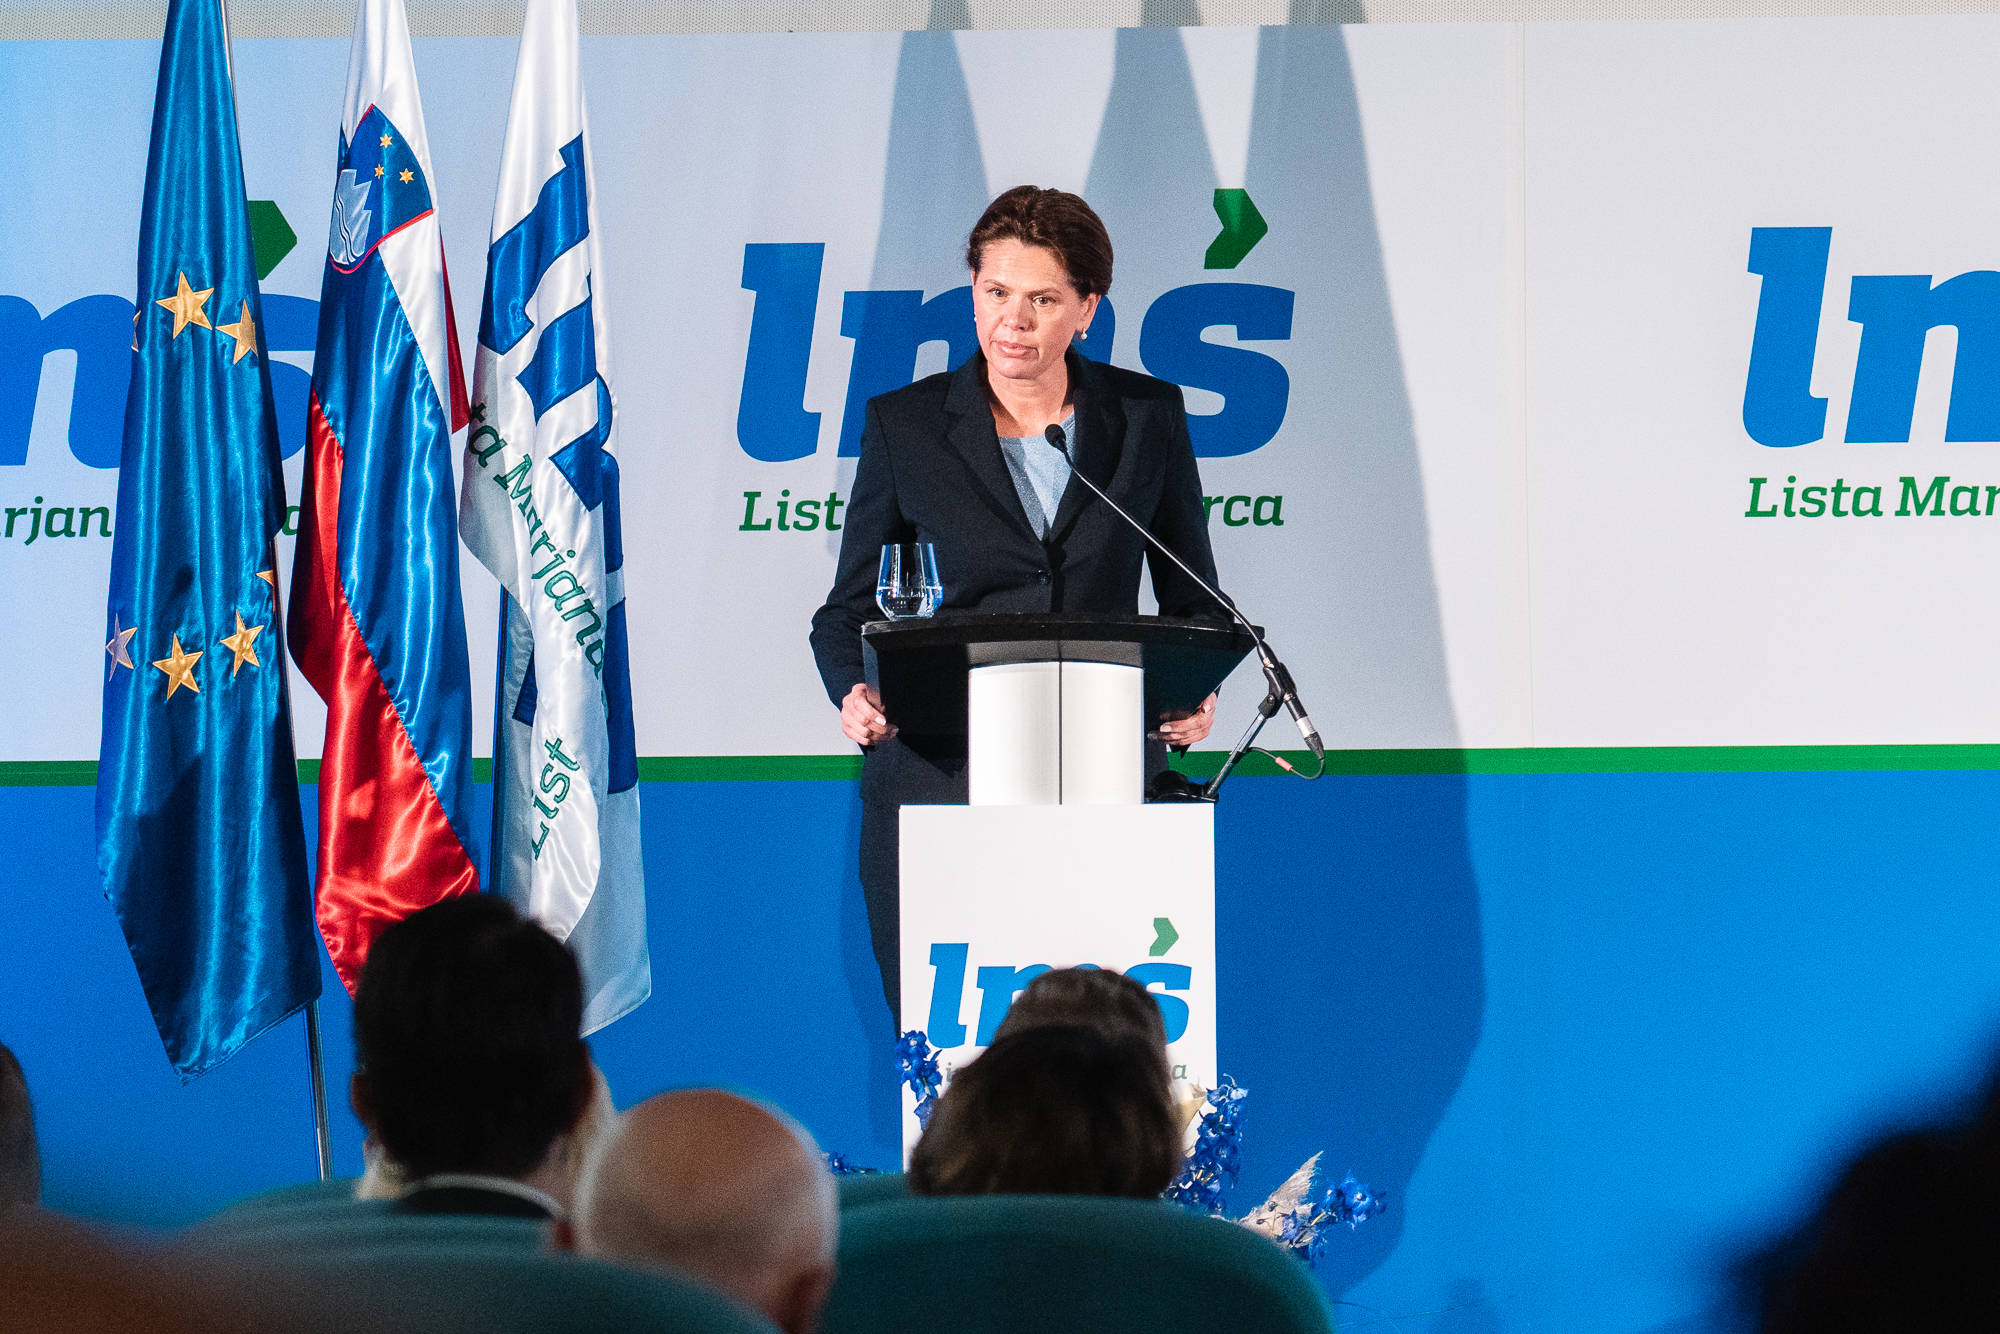 Alenka Bratušek, president of Alenka Bratušek Party, on the stage at the Fifth Congress of Lista Marjana Šarca